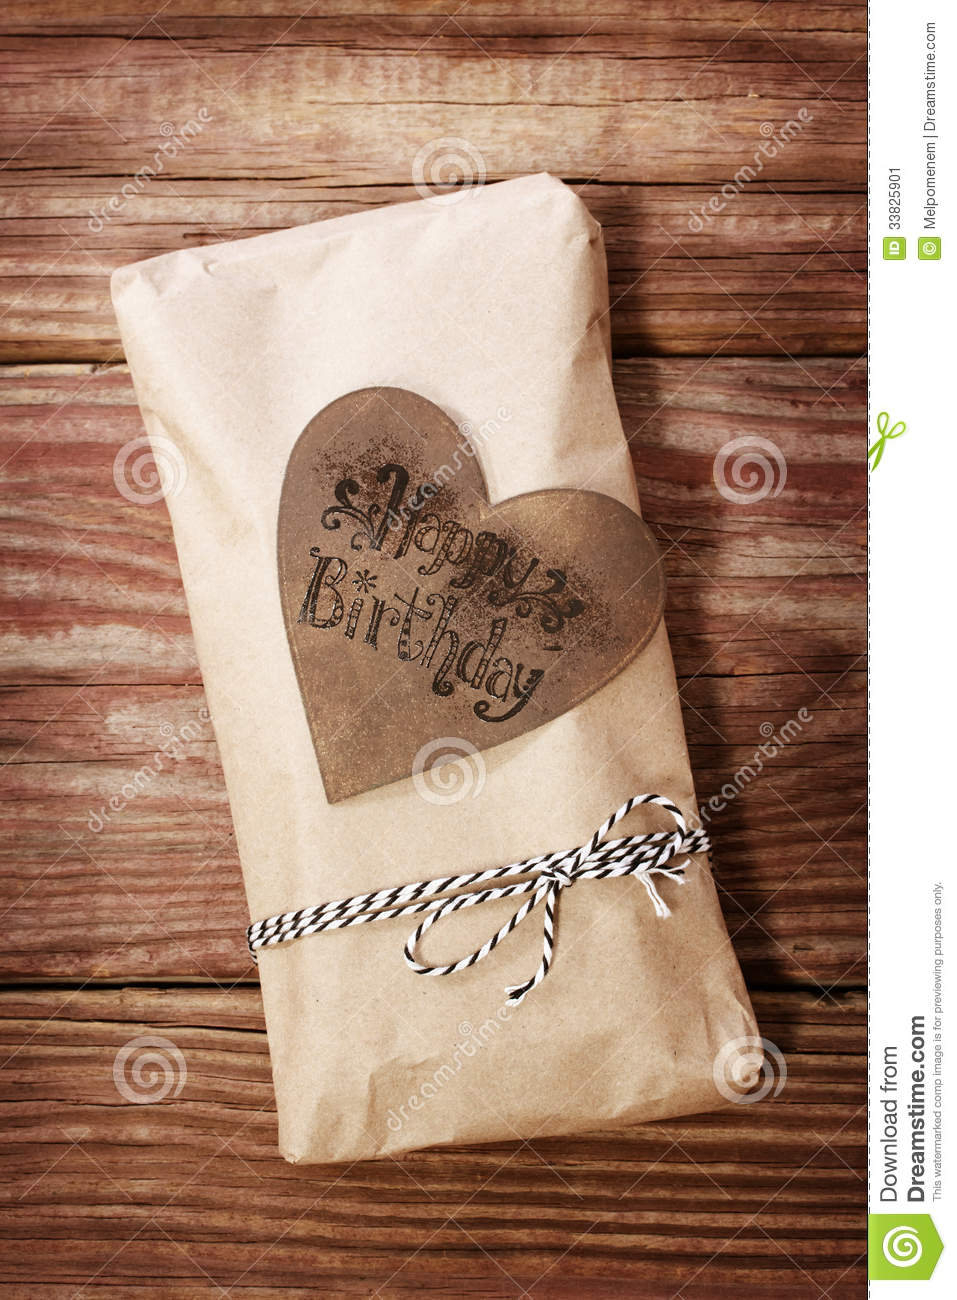 Happy Birthday Gift Box In A Rustic Earthy Style Stock